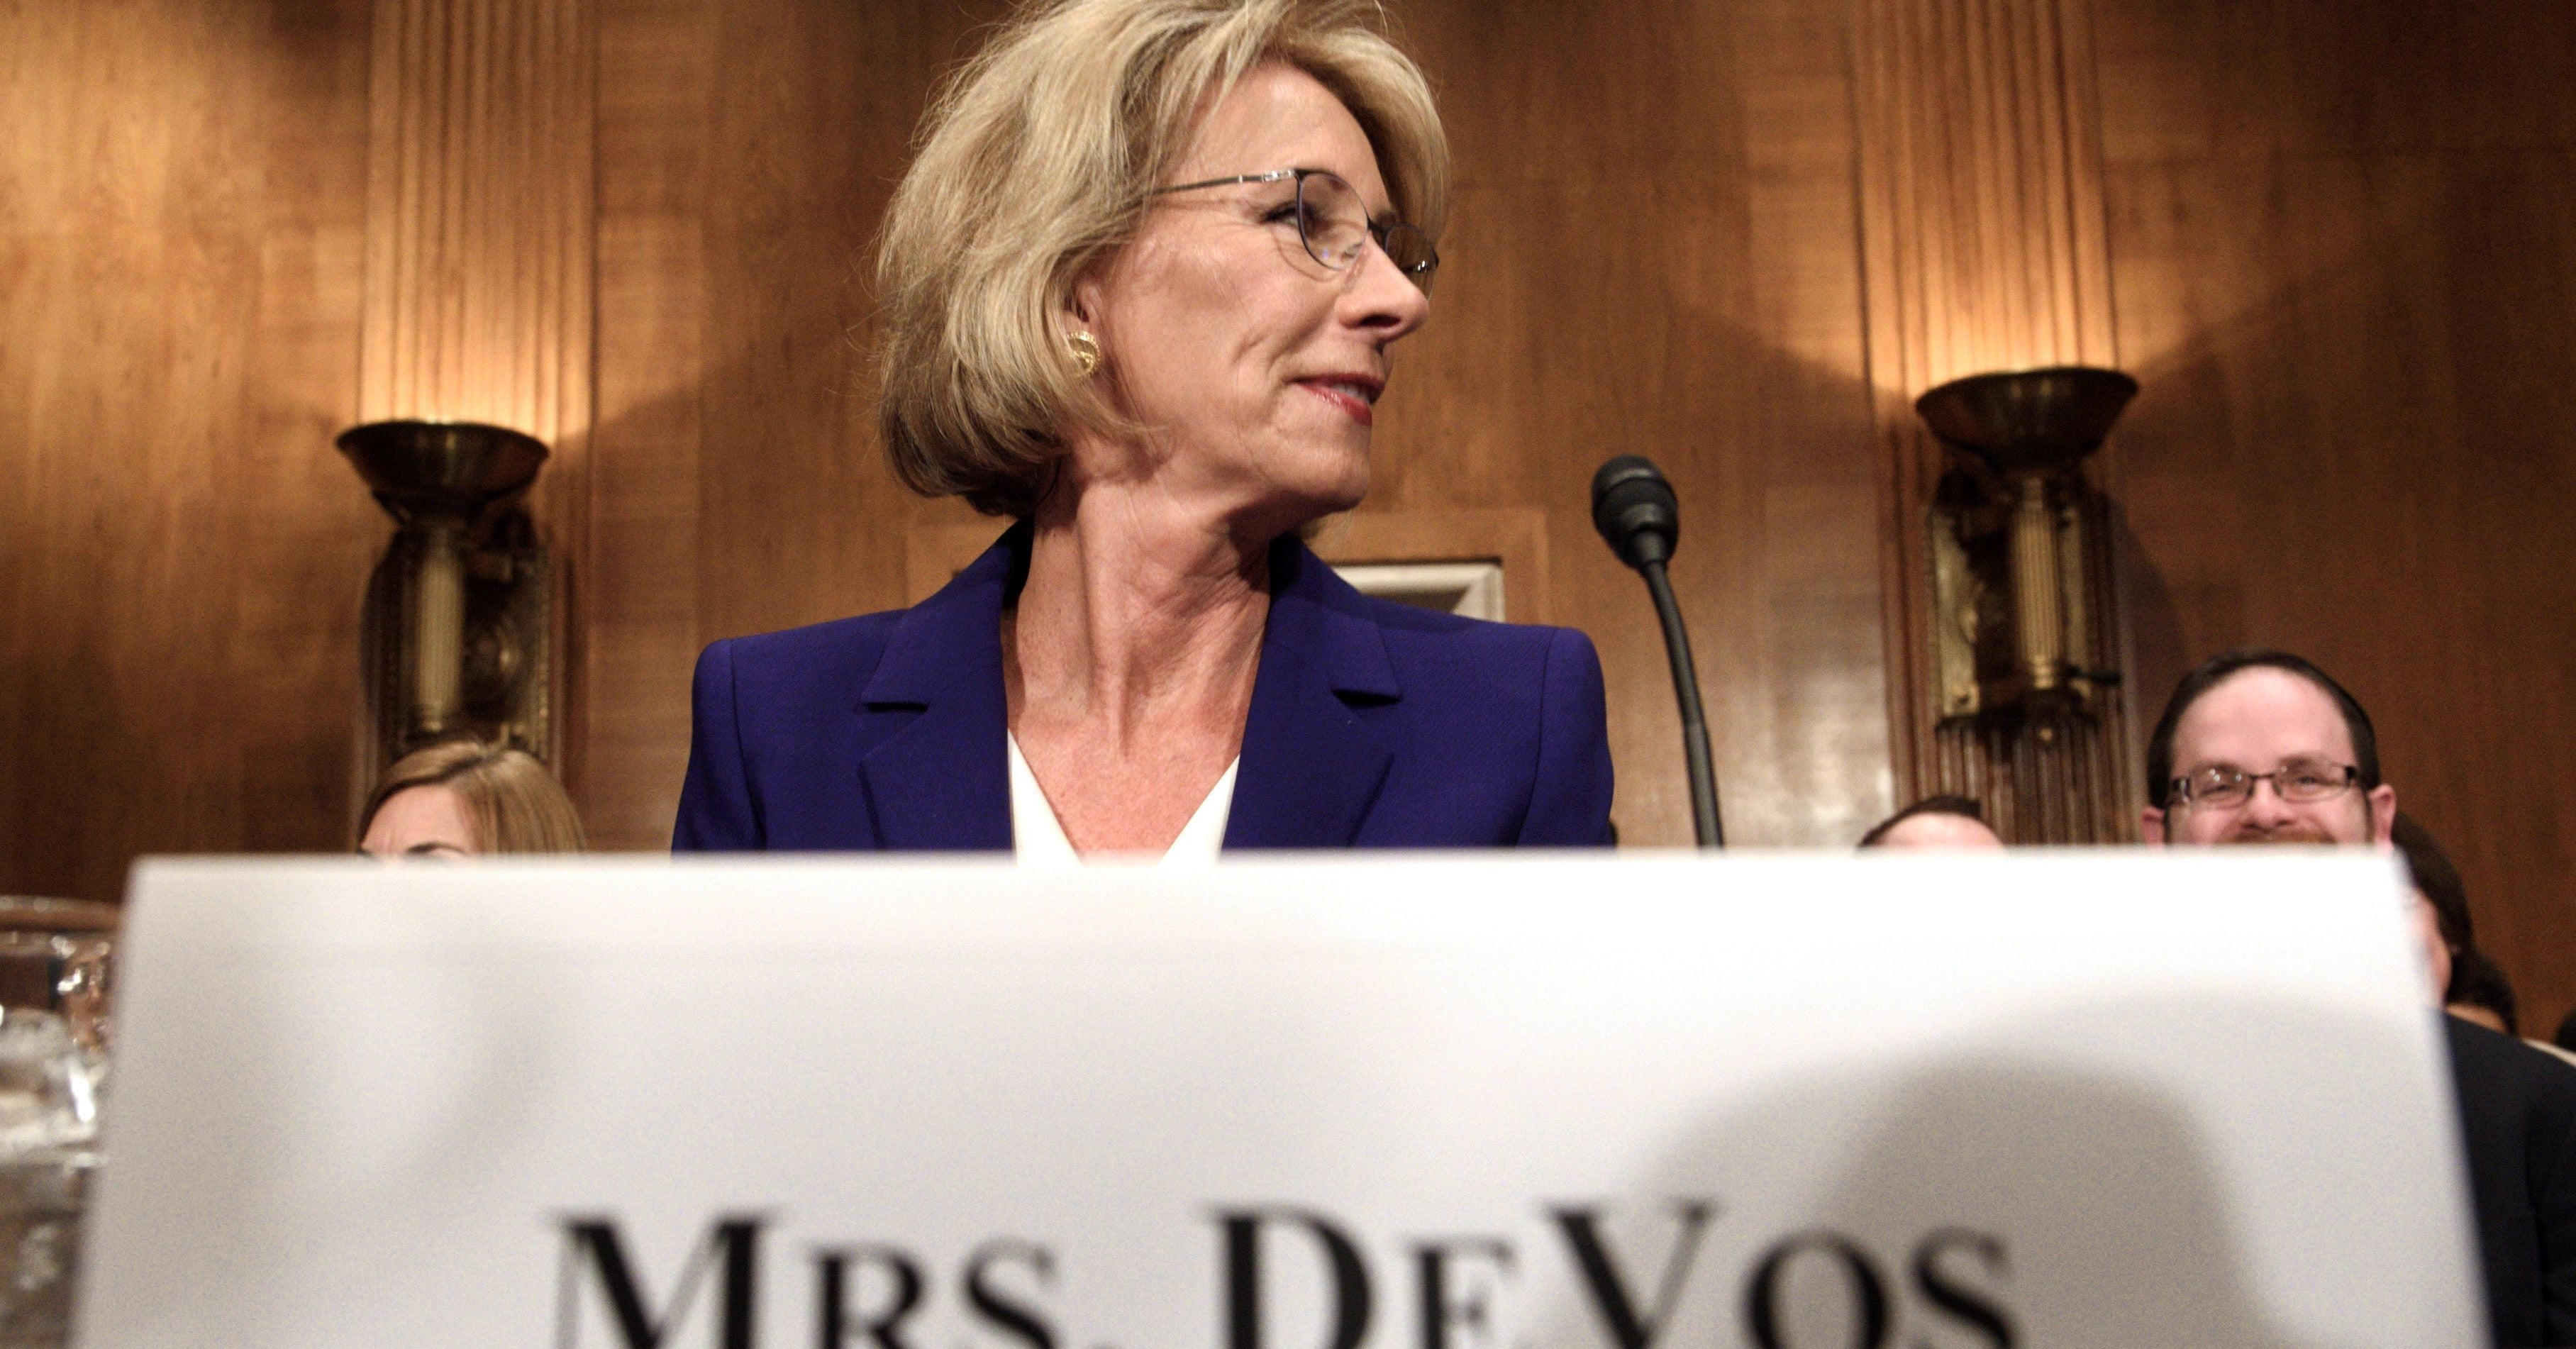 Devos Invested More Money In Brain >> For A Glimpse At The Billionaire Class Check Out Betsy Devos S Finances